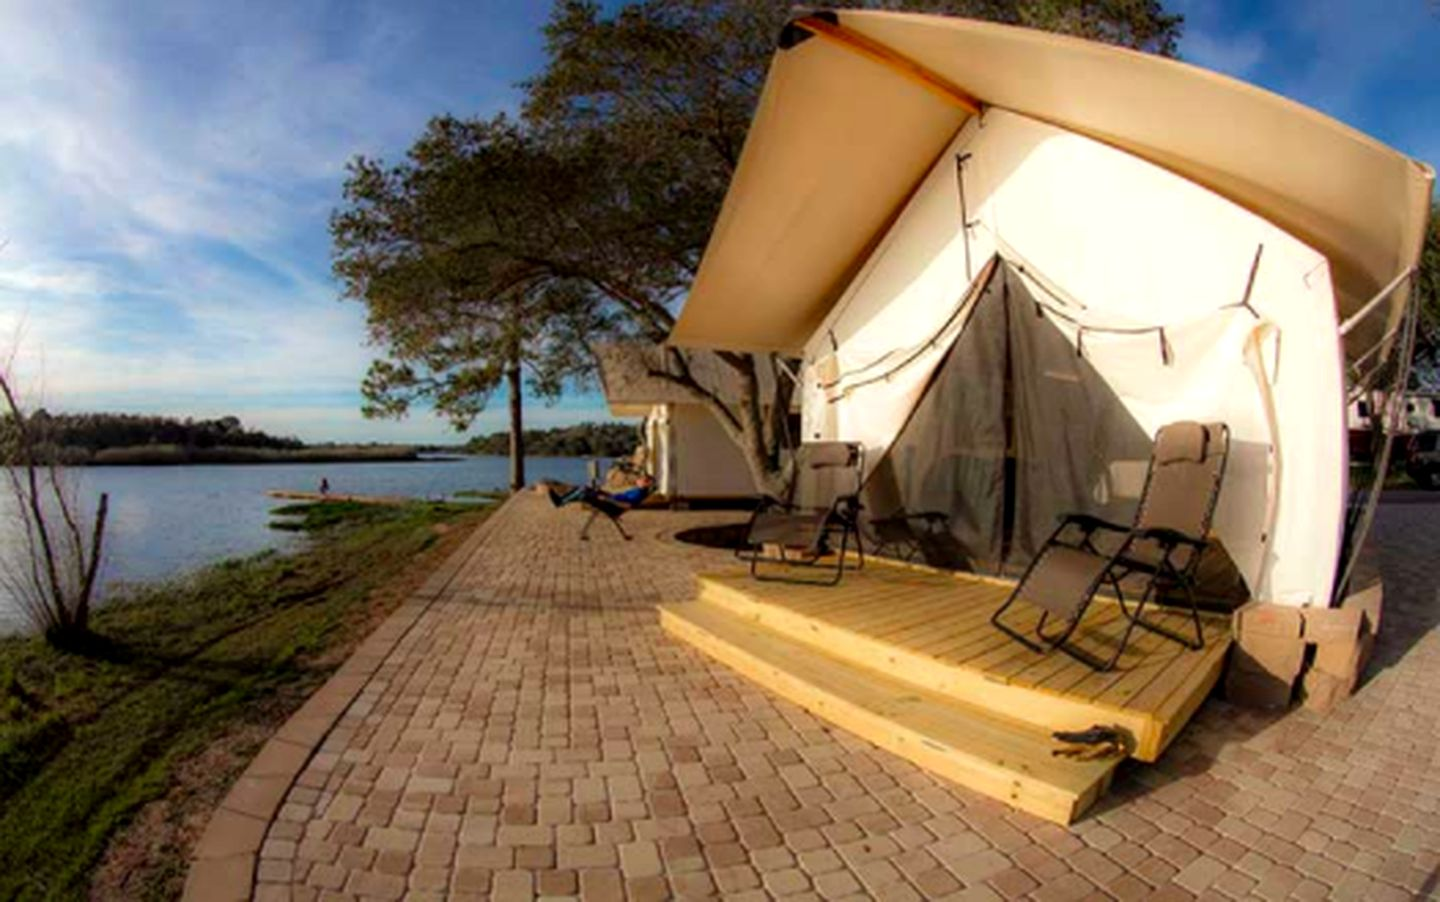 Safari Tents (Defuniak Springs, Florida, United States)